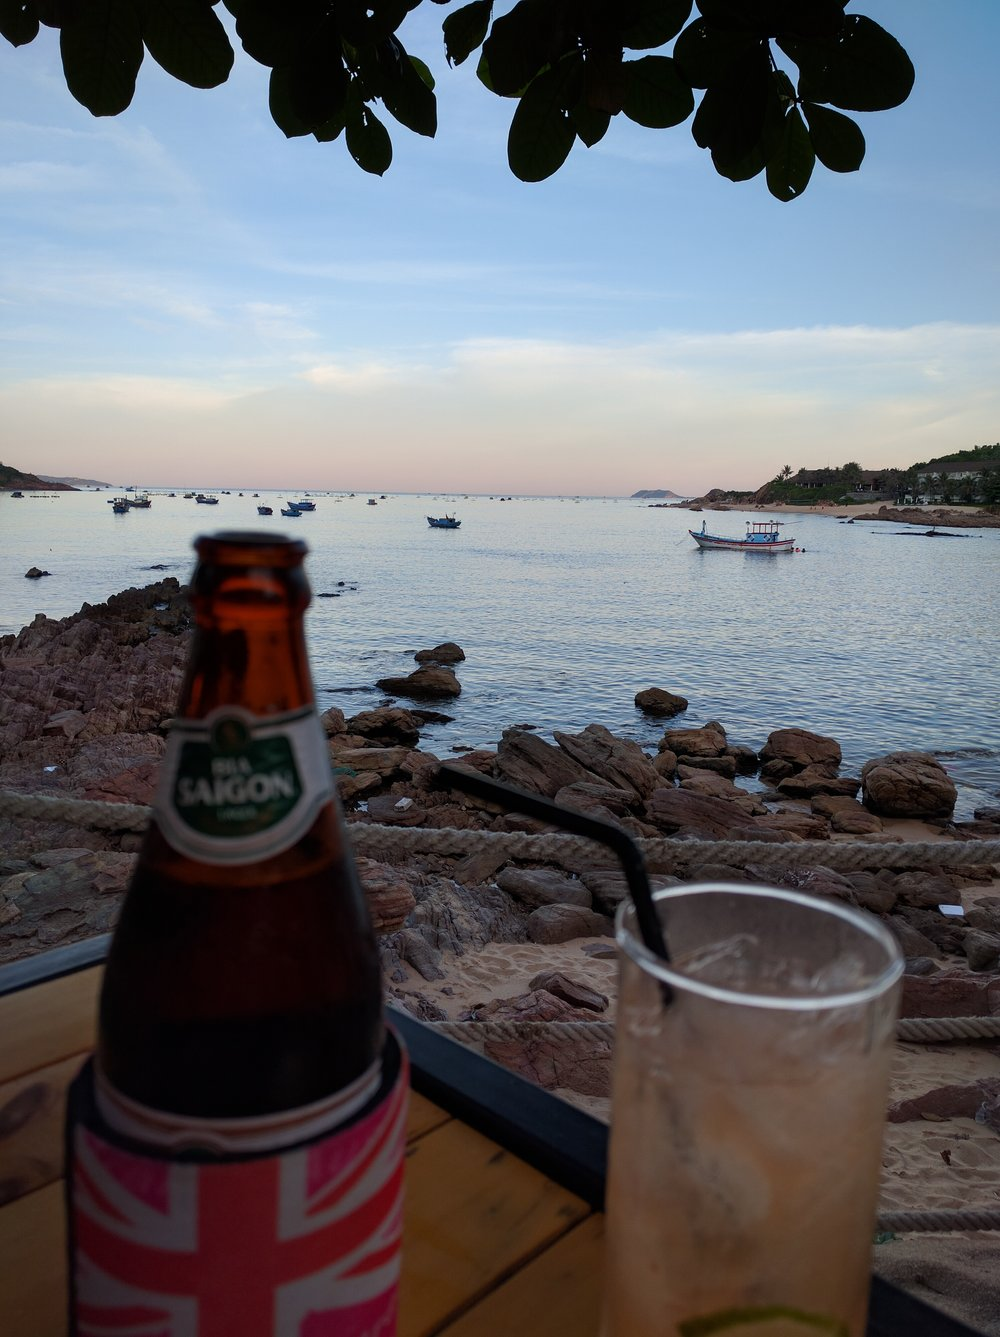 Happy hour in the Bai Xep village; The resort where we stayed is off to the right in the distance